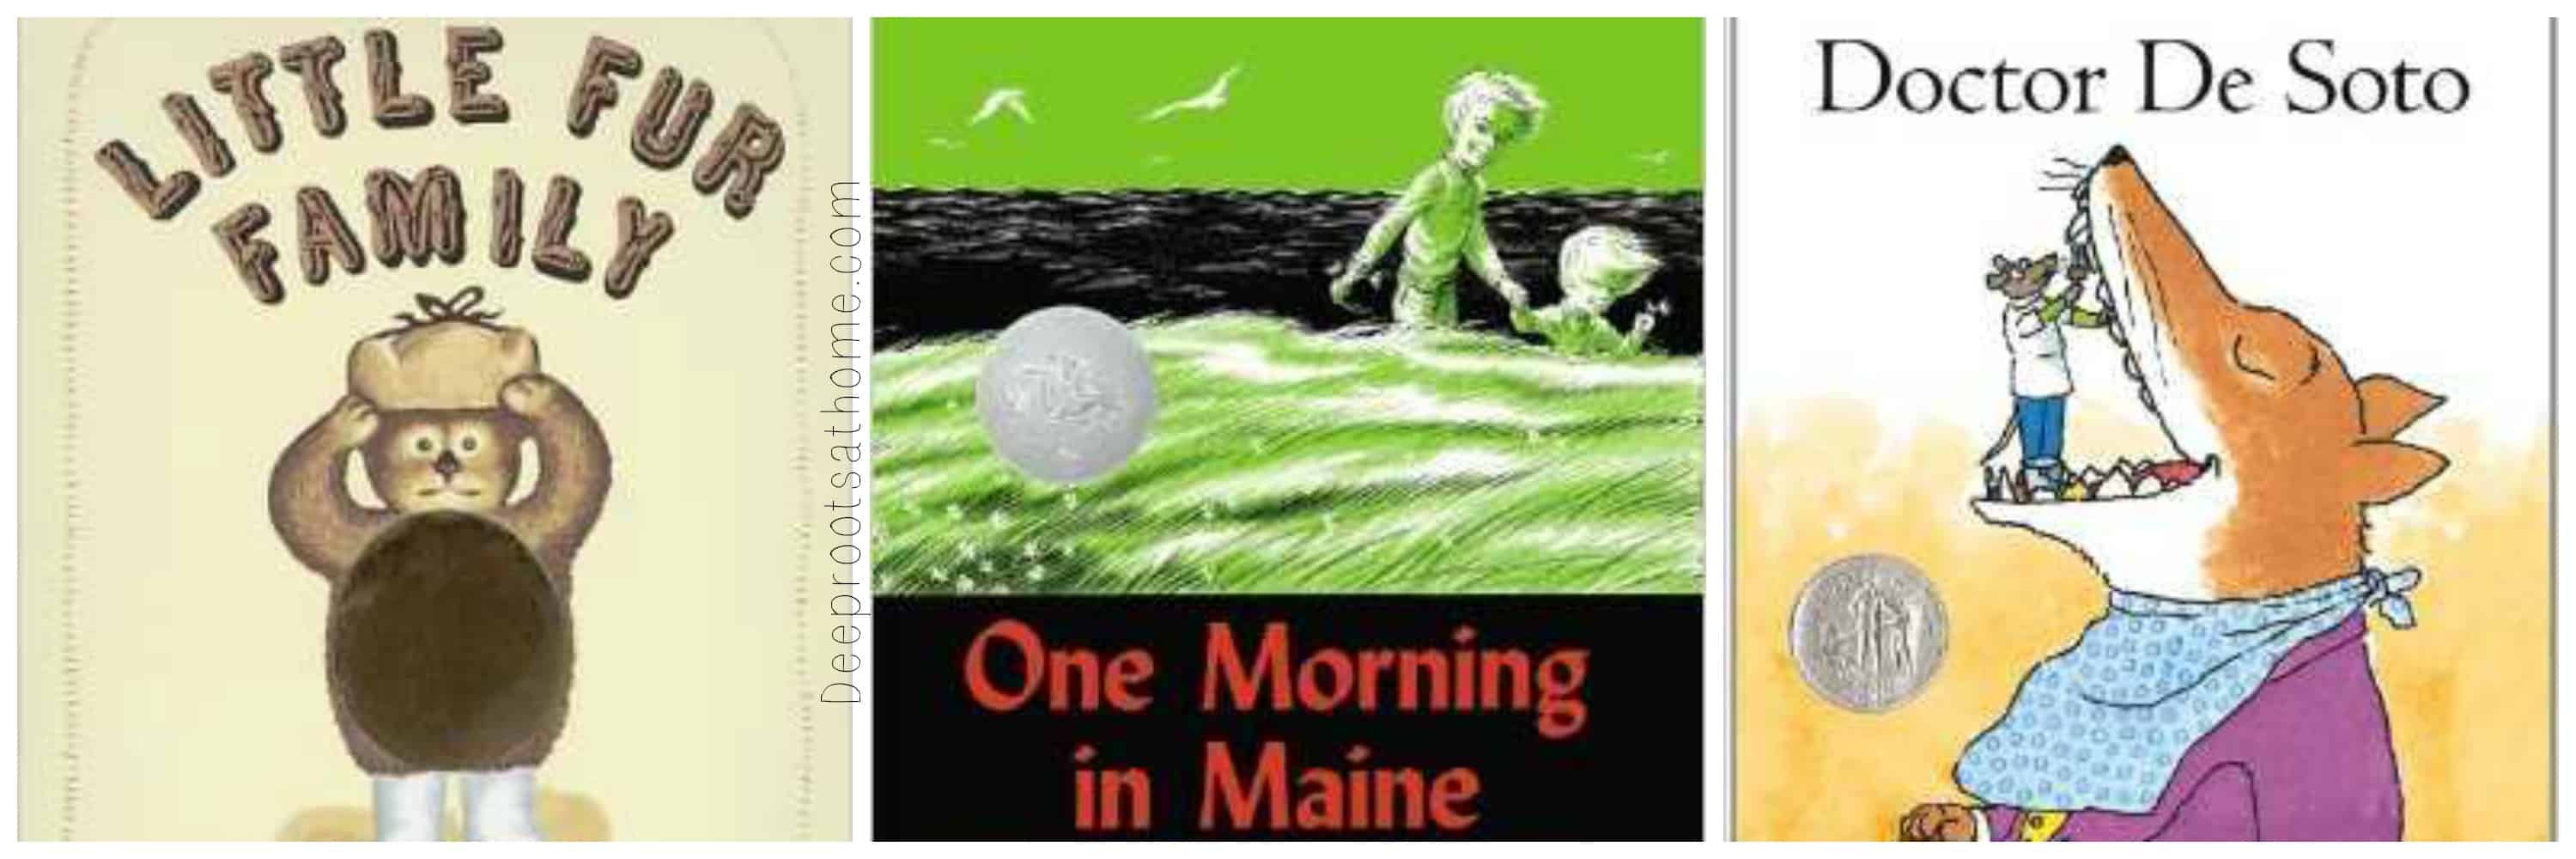 3 books: The Little fur Family, One Morning in Maine, and Doctor De Soto by Robert McCloskey.